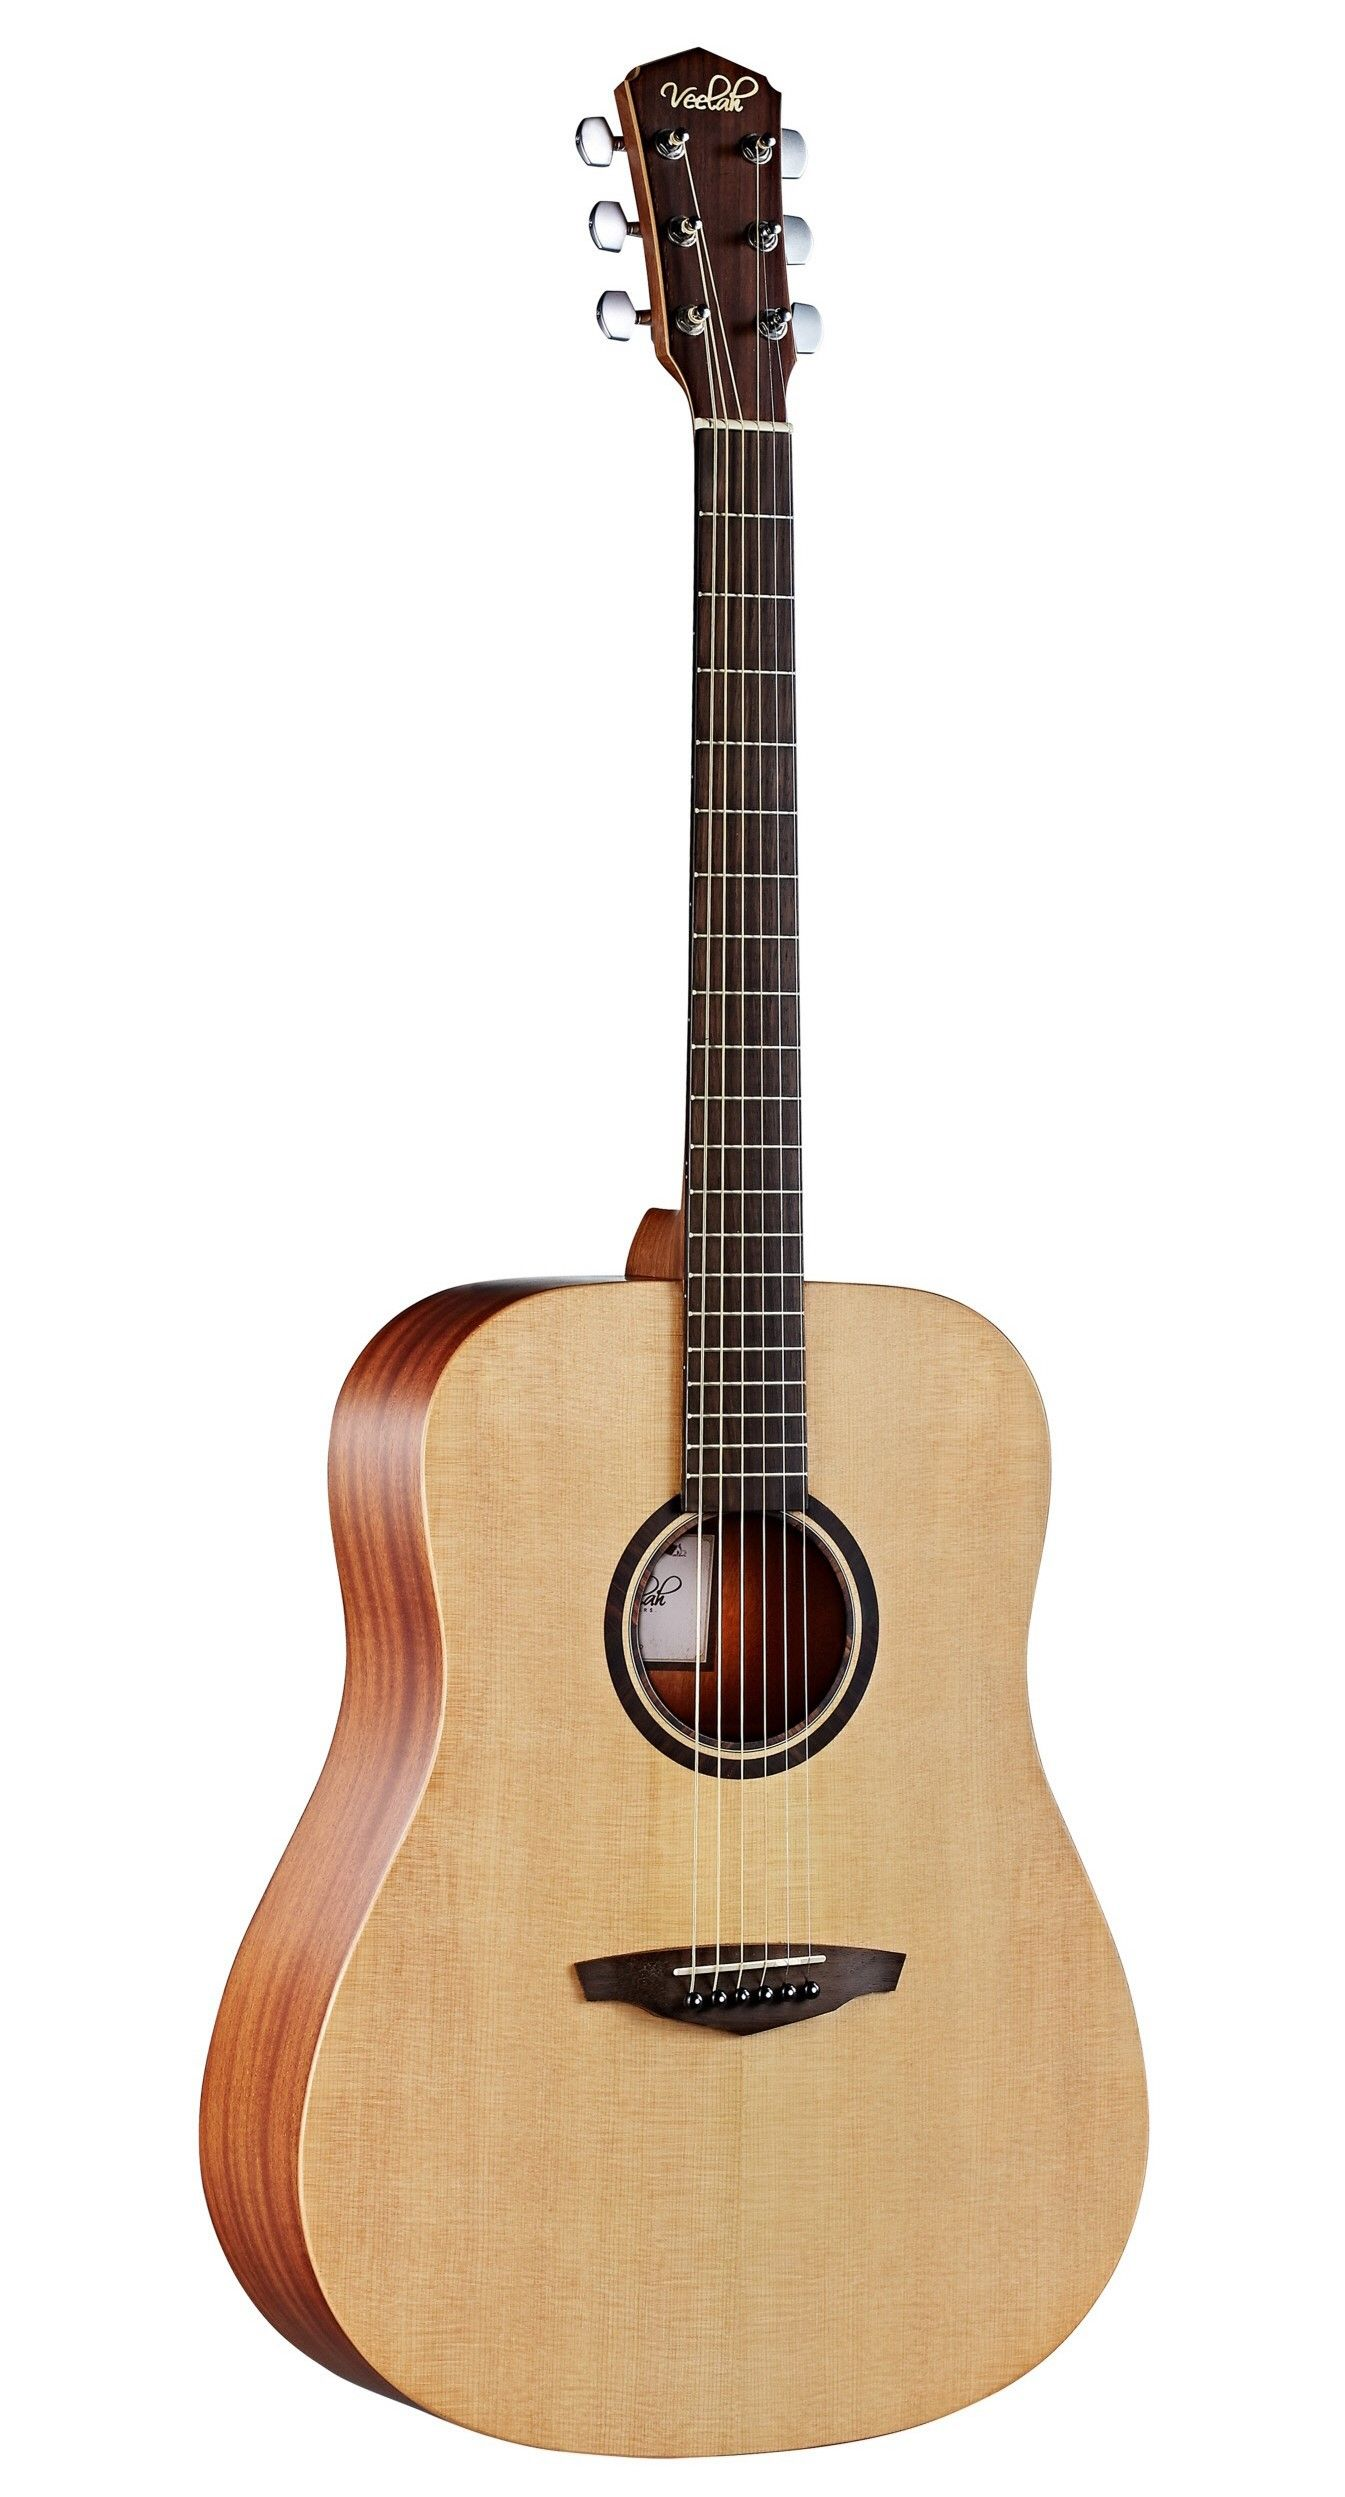 Veelah Guitare Folk V1 D Naturel Massive Guitare Guitare Acoustique